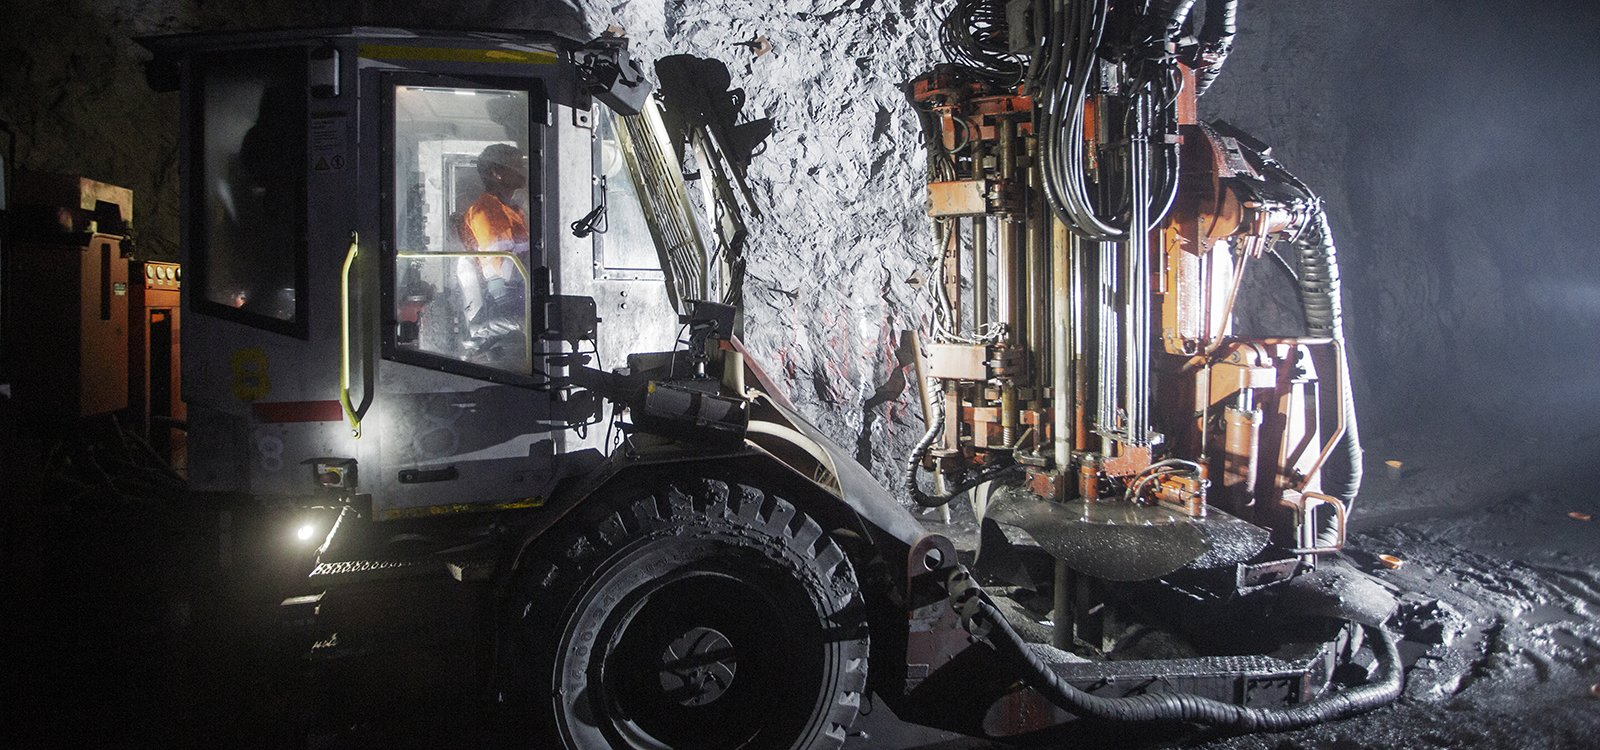 The electro-hydraulic Sandvik DL421 longhole drill rig is an ideal match for the large-scale production under way at the SK mine.